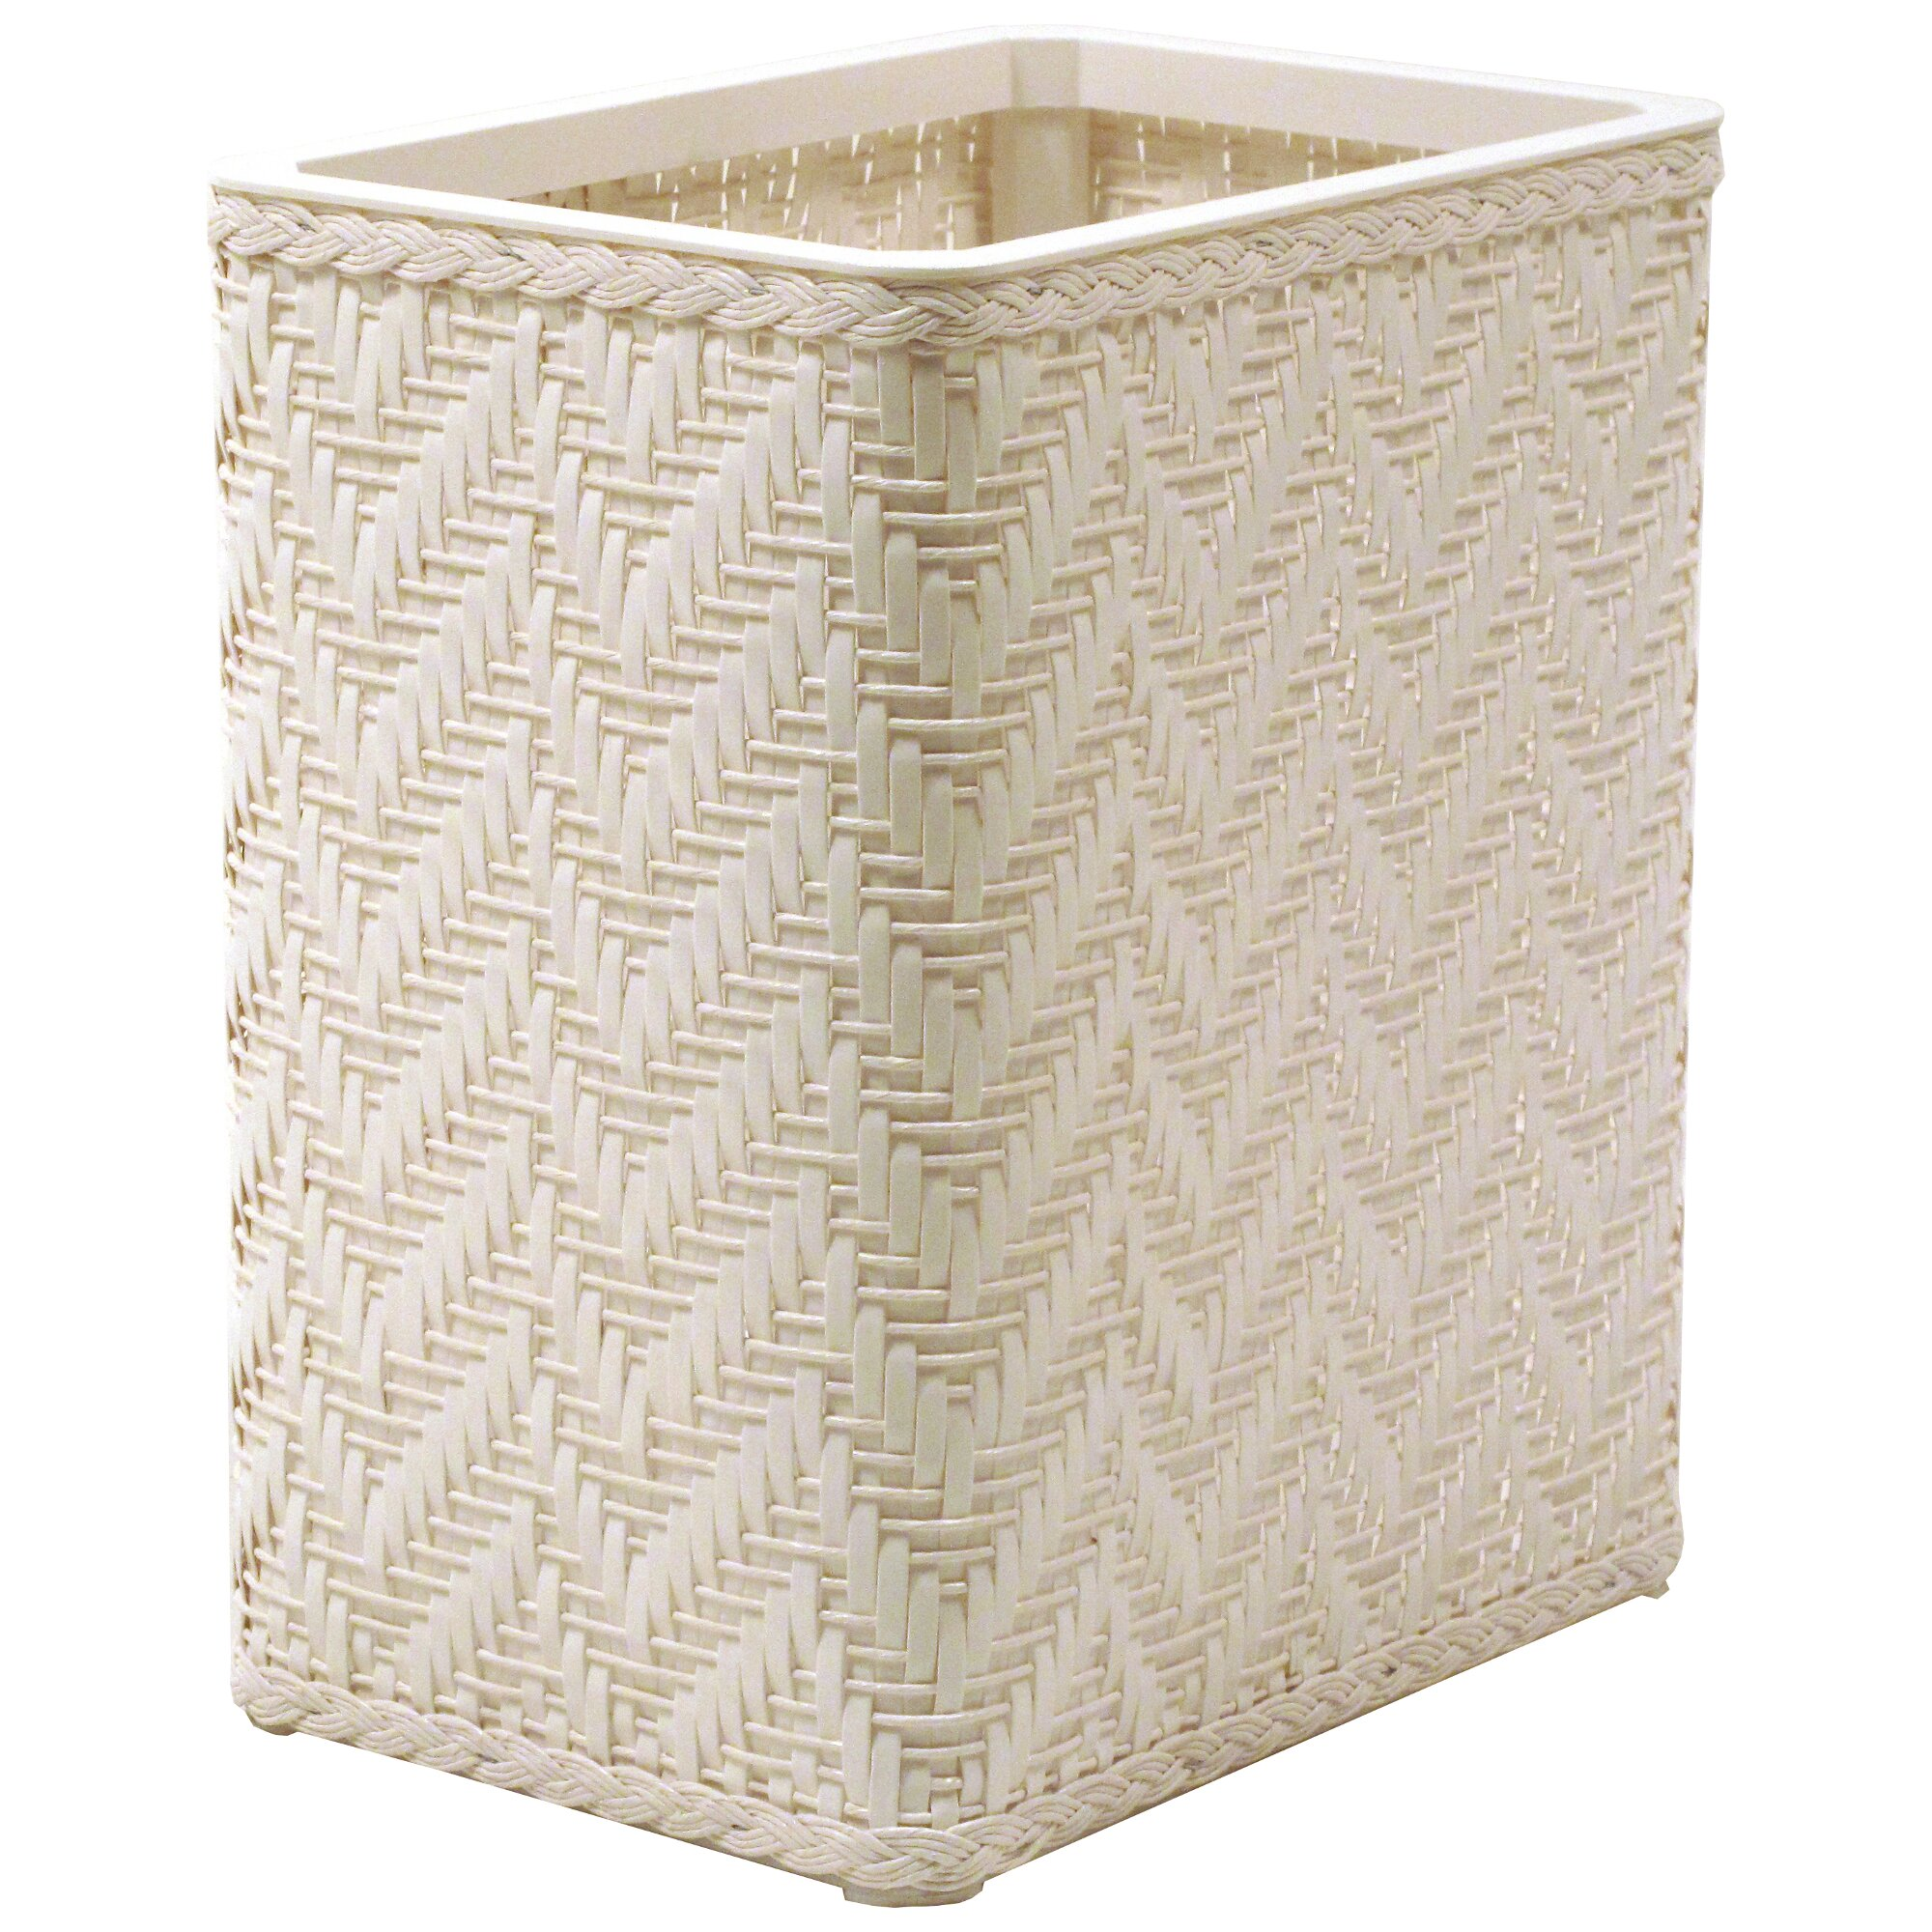 Redmon elegante decorator wicker wastebasket reviews wayfair - Elegant wastebasket ...